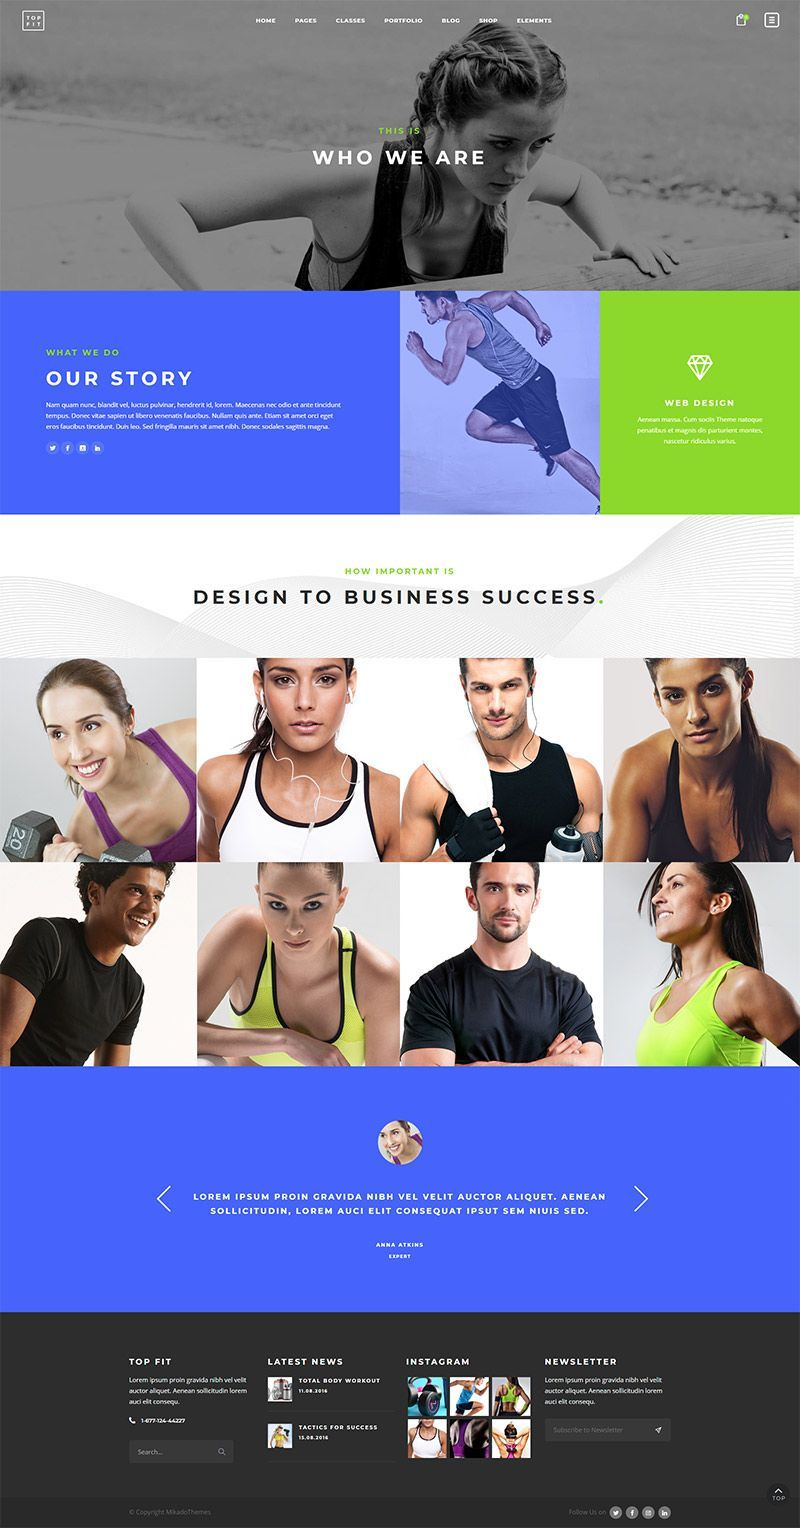 TopFit Fitness and Gym Theme Sports graphic design